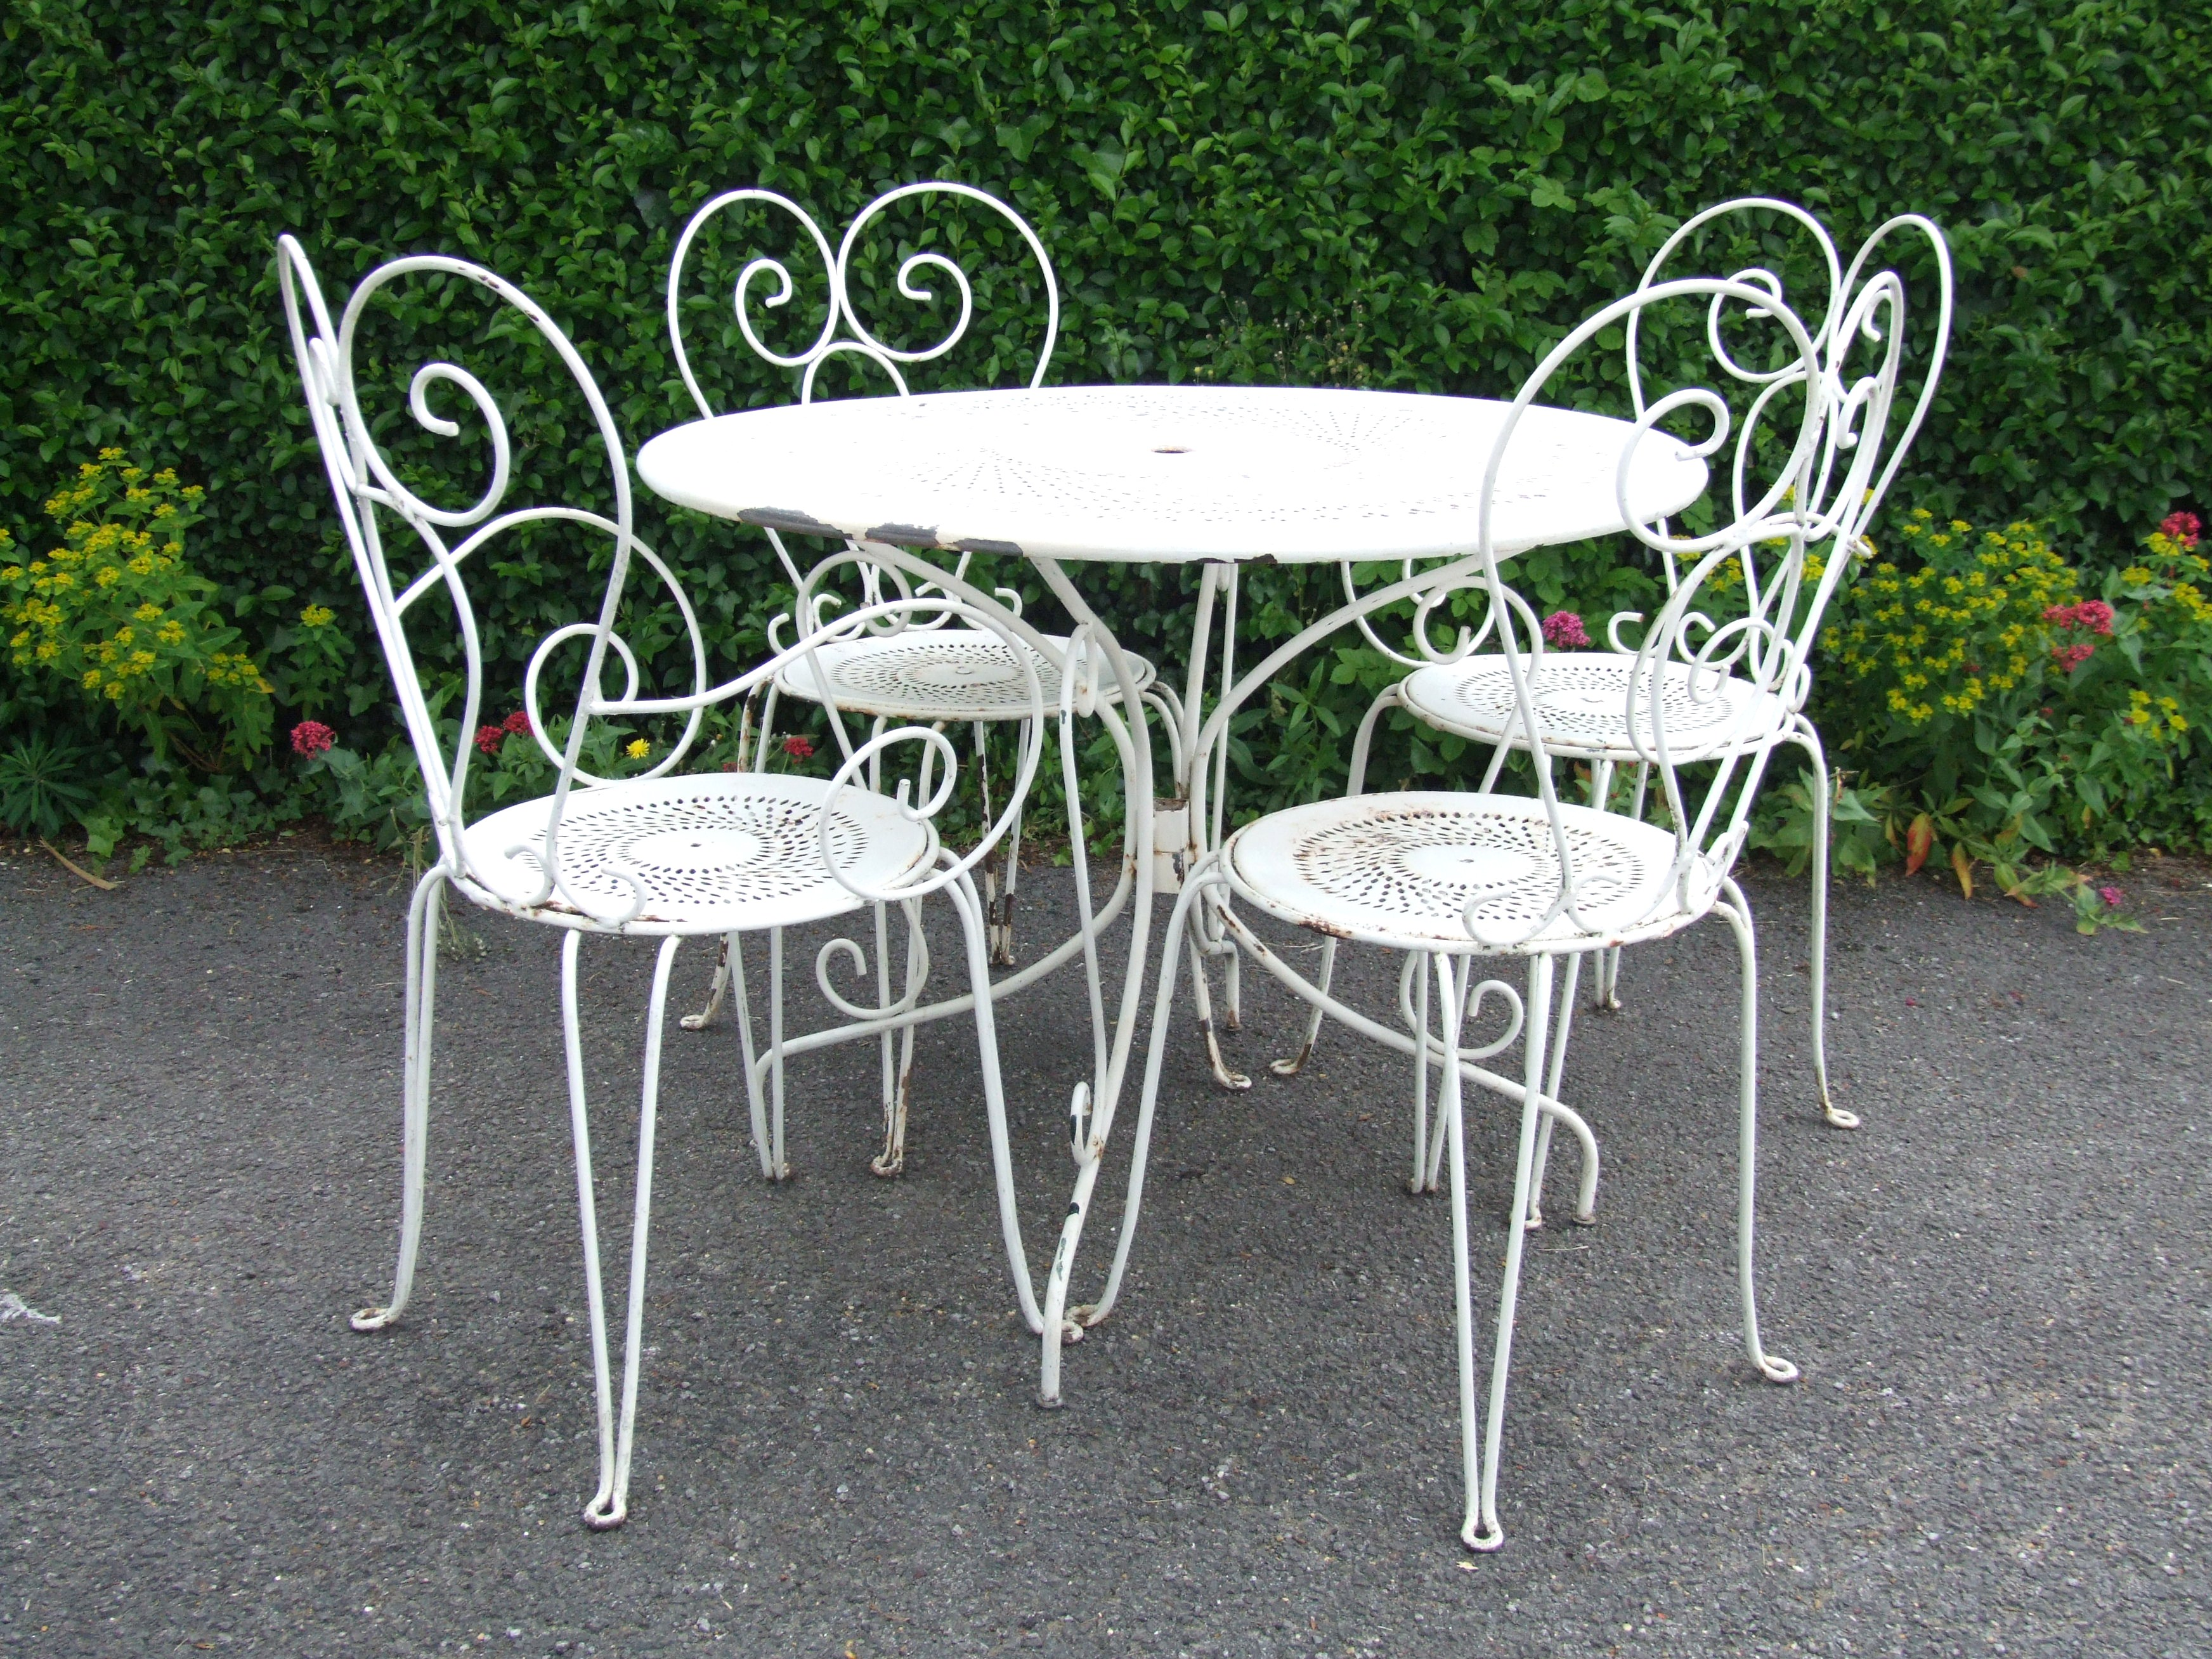 G181 s lovely vintage french wrought iron garden patio caf table and 4 chairs set la French metal garden furniture